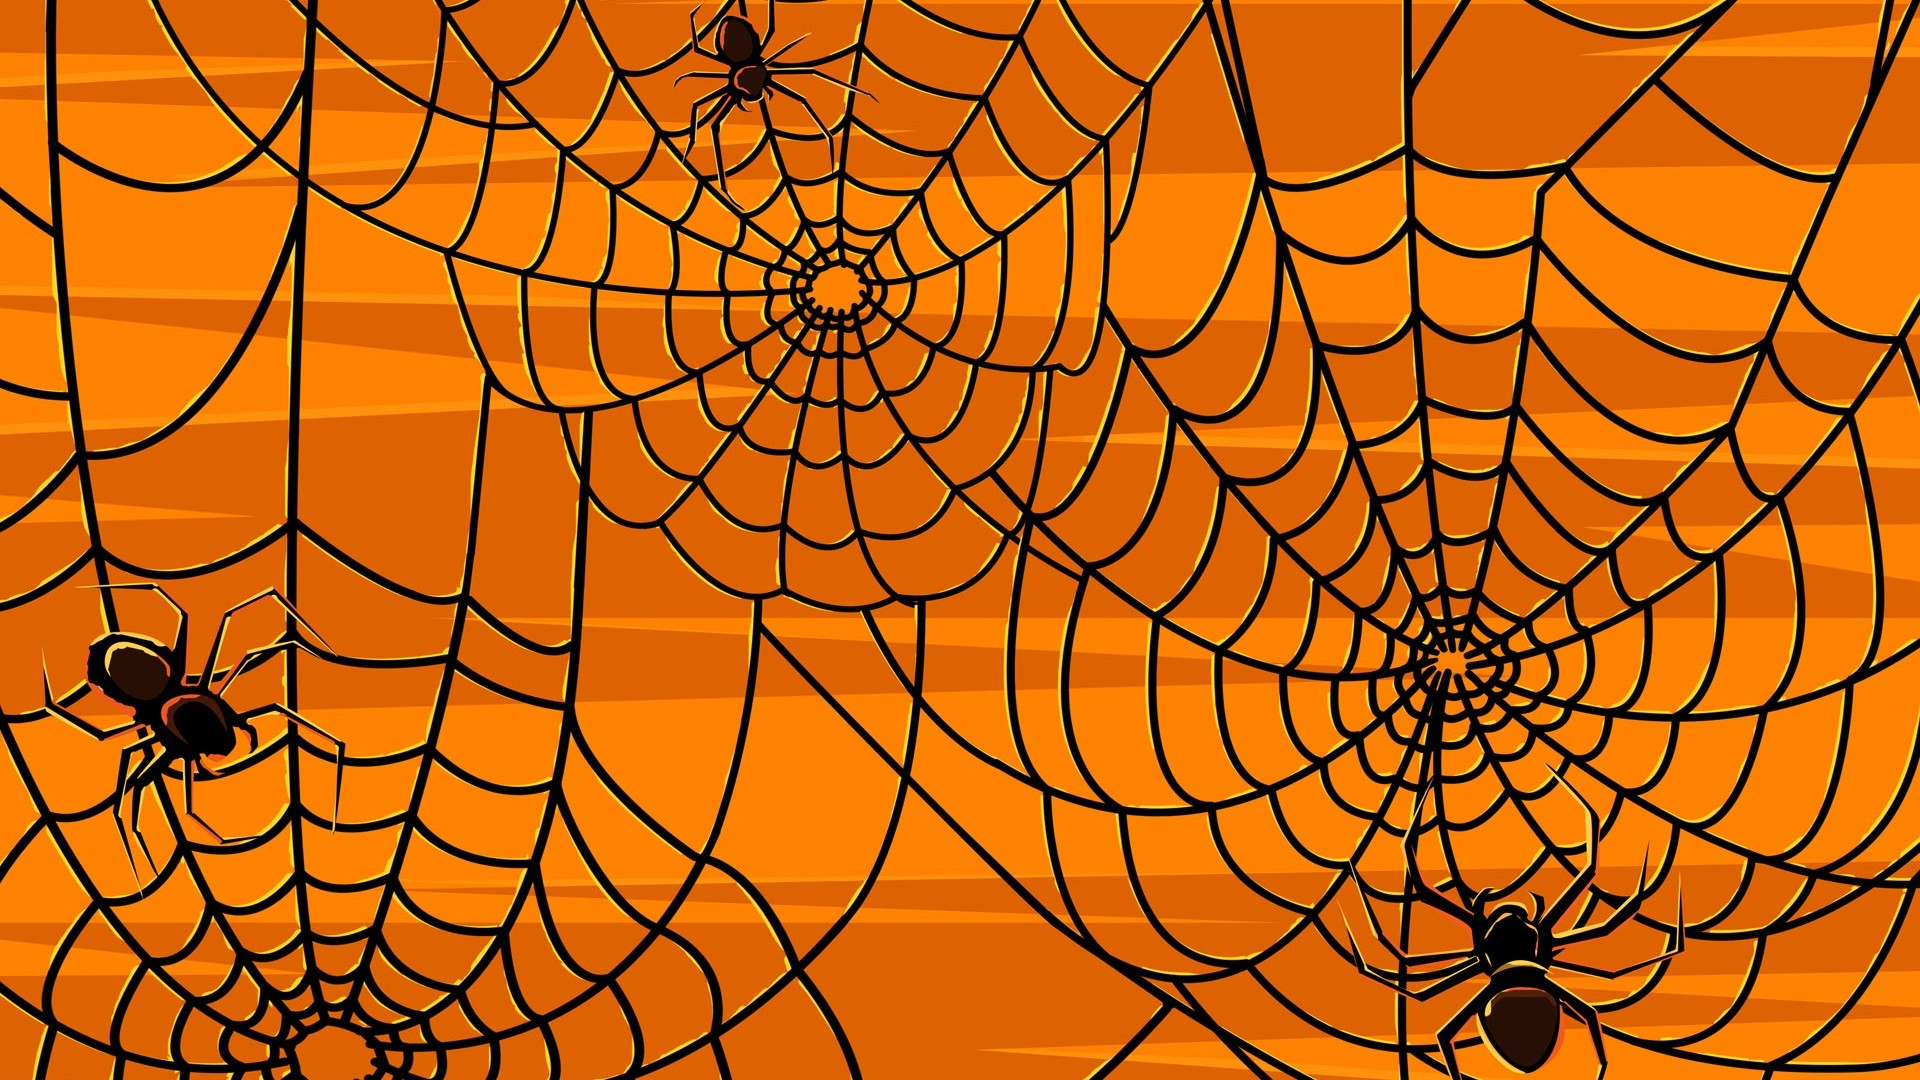 1920x1080 Free Halloween Backgrounds Â« Long Wallpapers. Free Halloween Backgrounds  Long Wallpapers